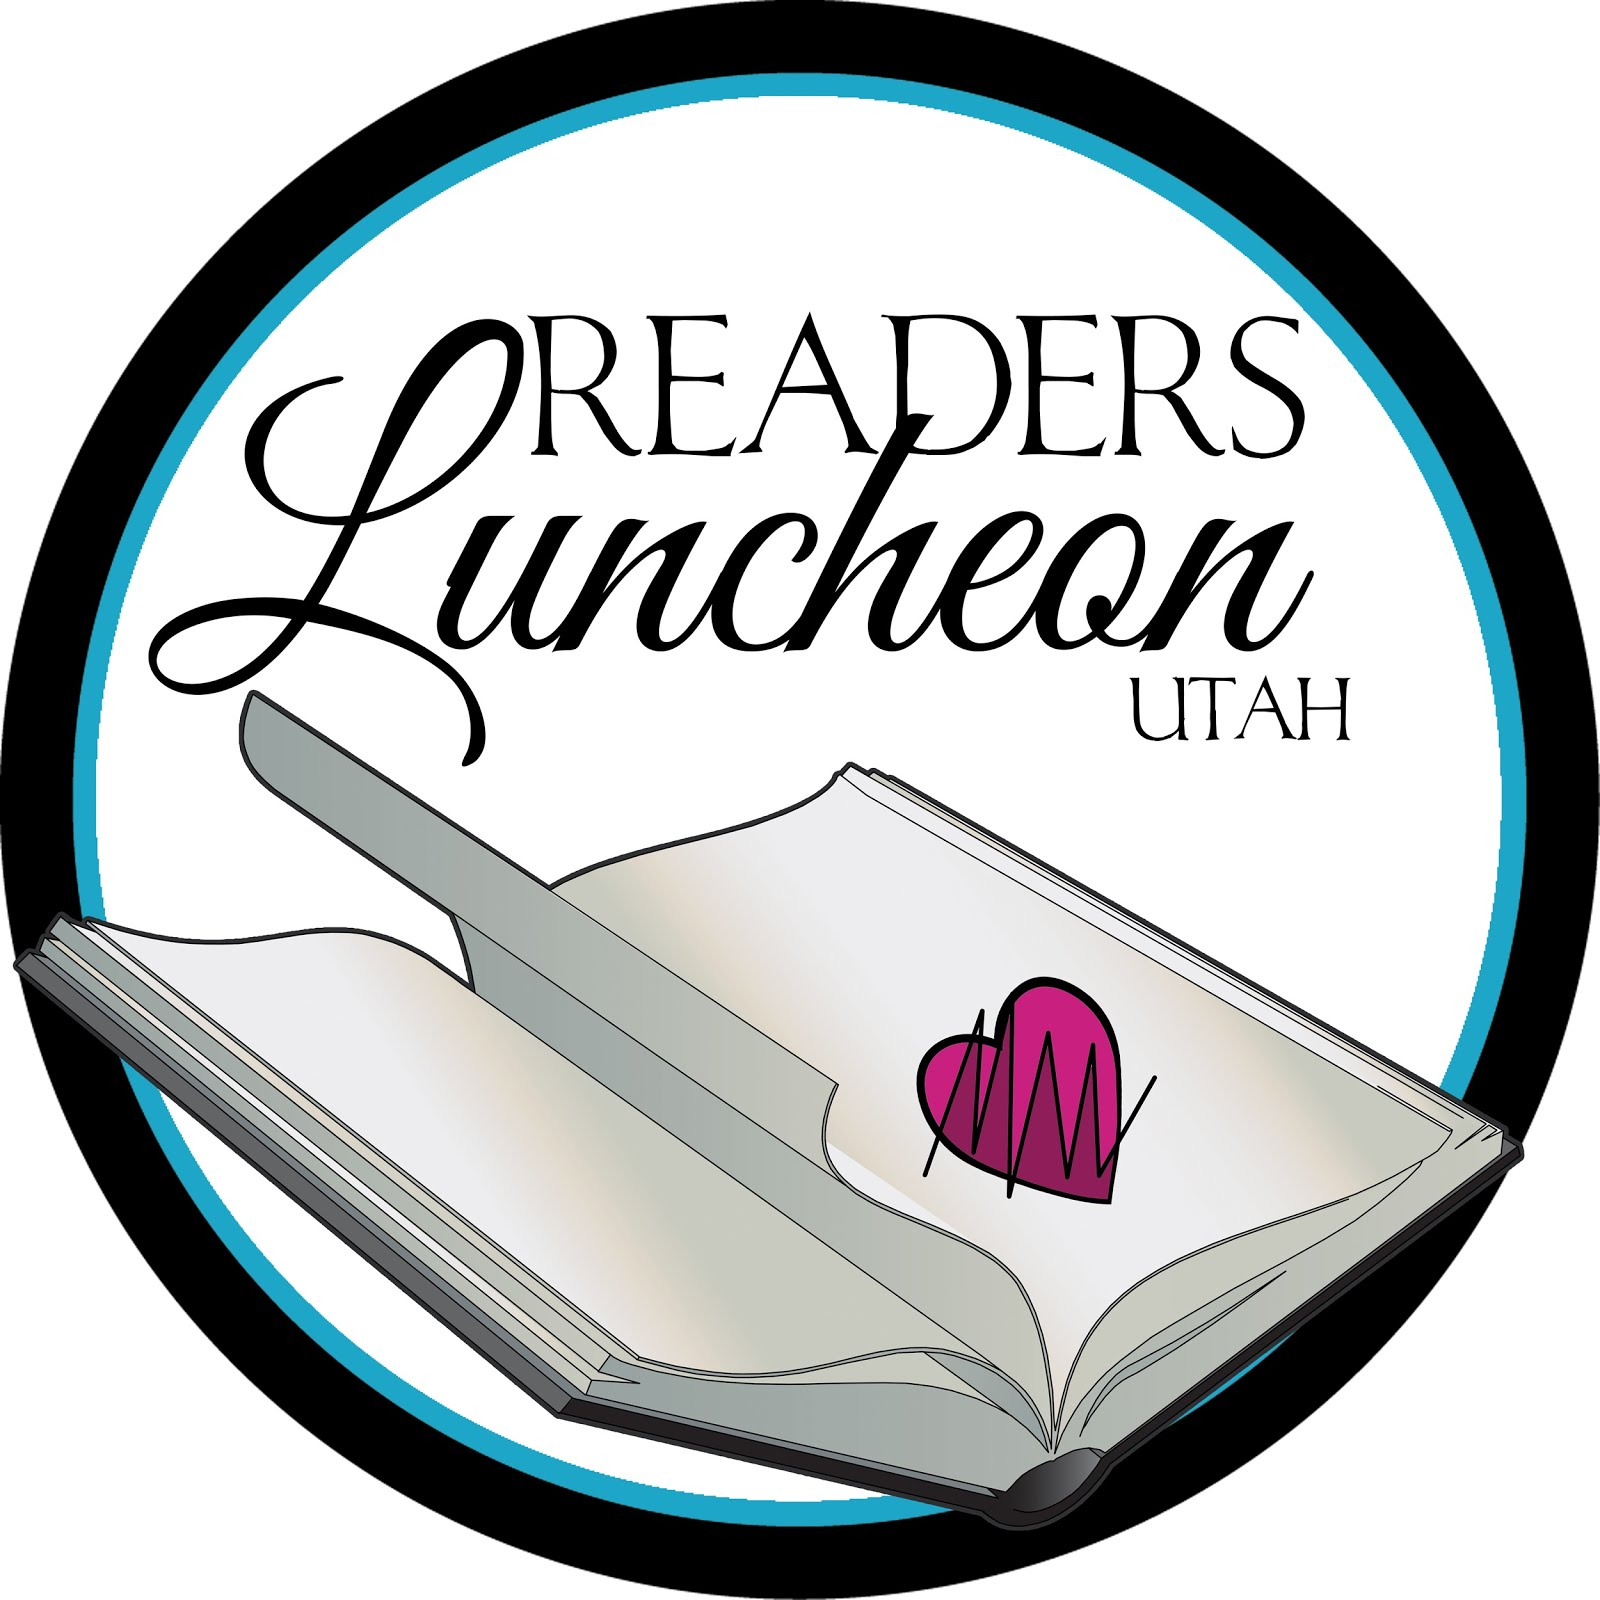 Readers Luncheon Utah